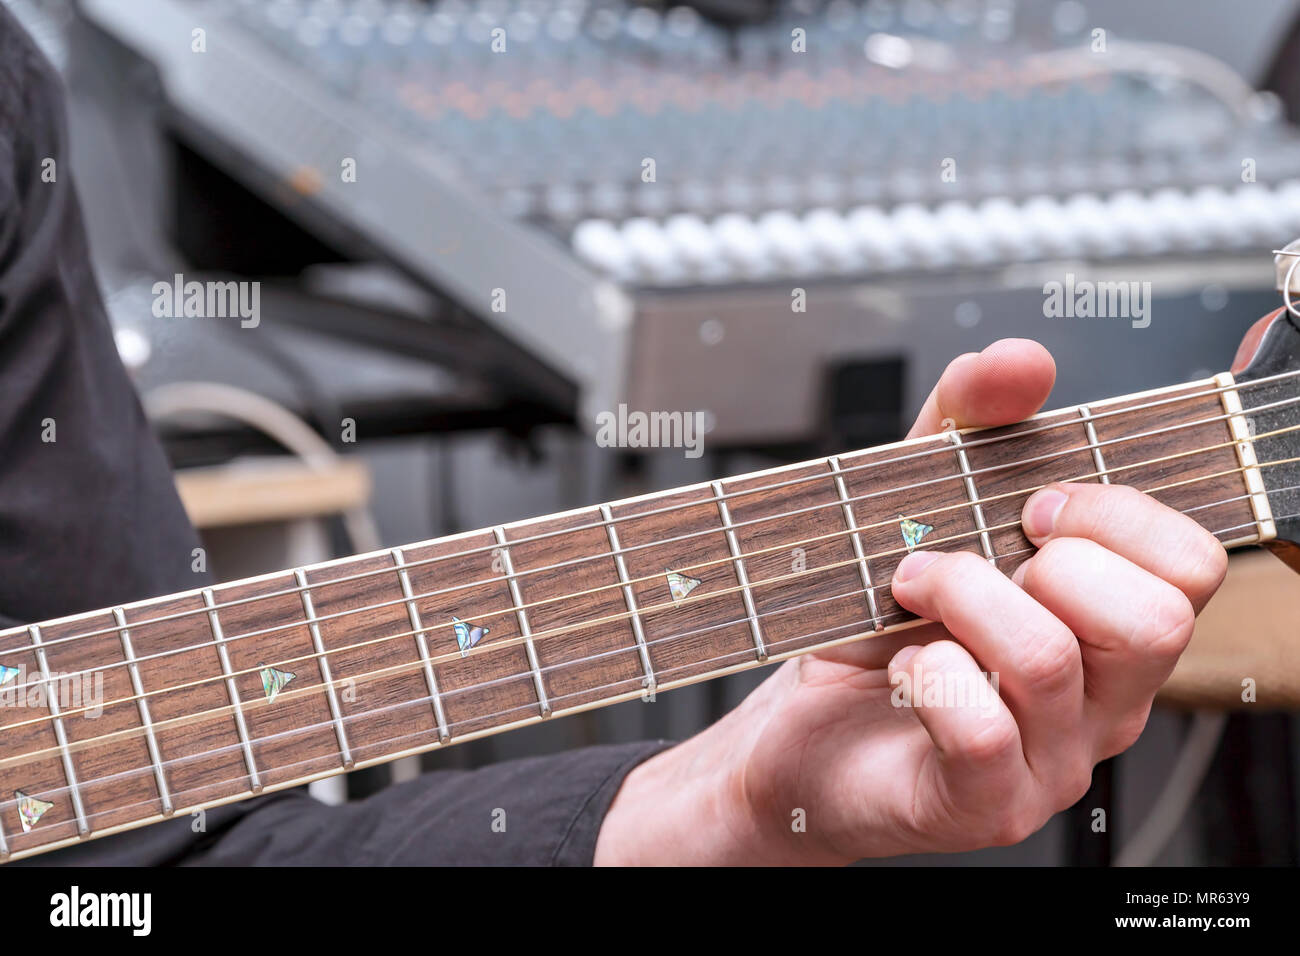 The Hand Of The Guitarist On The Fingerboard Chord In D Major Stock